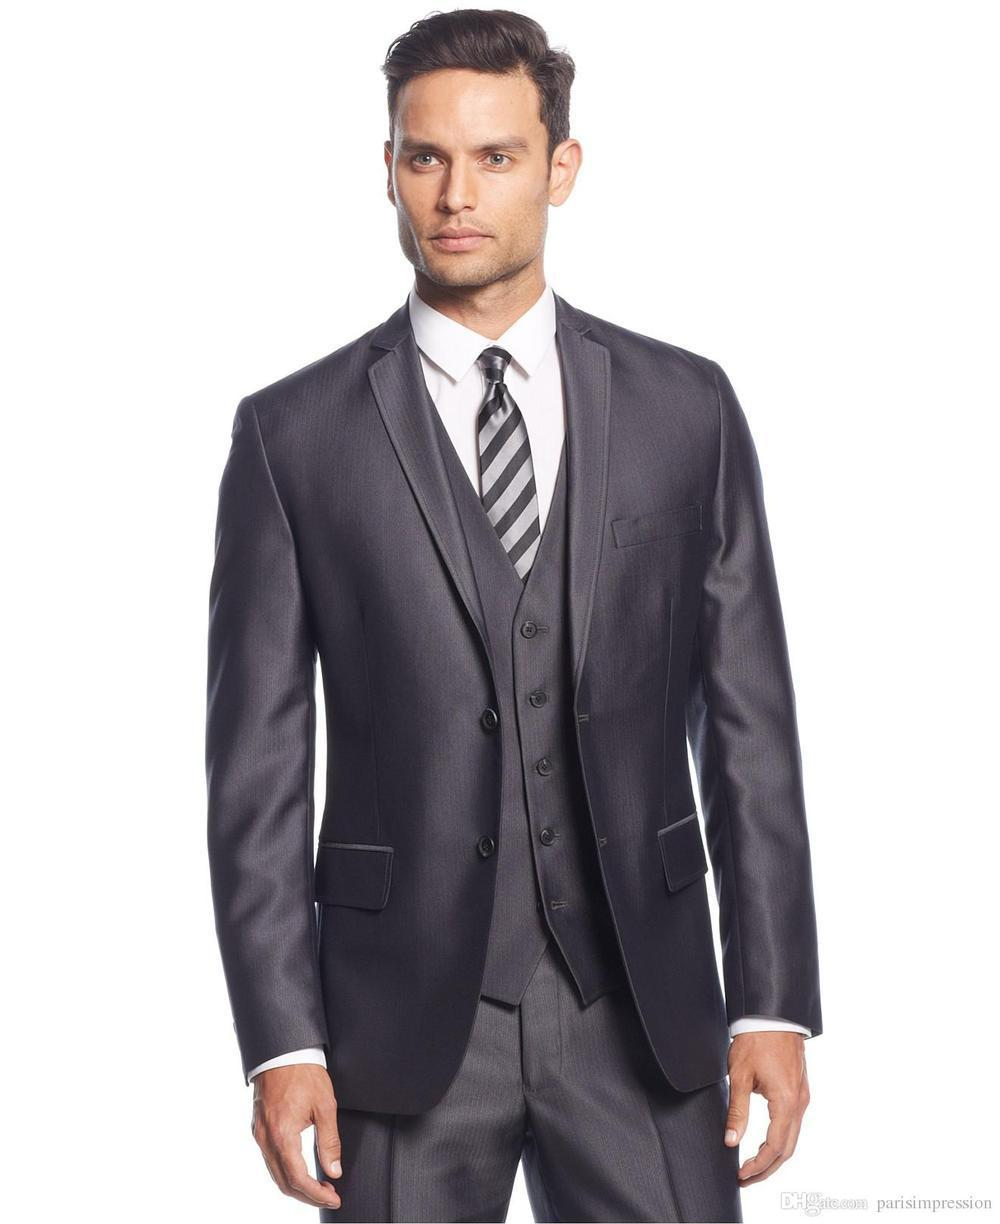 Spur Western Wear Offers Men's Western Suits For Western Weddings From Industry-Leading Brands Including Circle S, Scully And WahMaker. Choose From A Variety of Colors And Fabrics. Spur Western Wear Has The Suits You're Looking For, Along With More Men's Western Apparel And Cowboy Clothing.